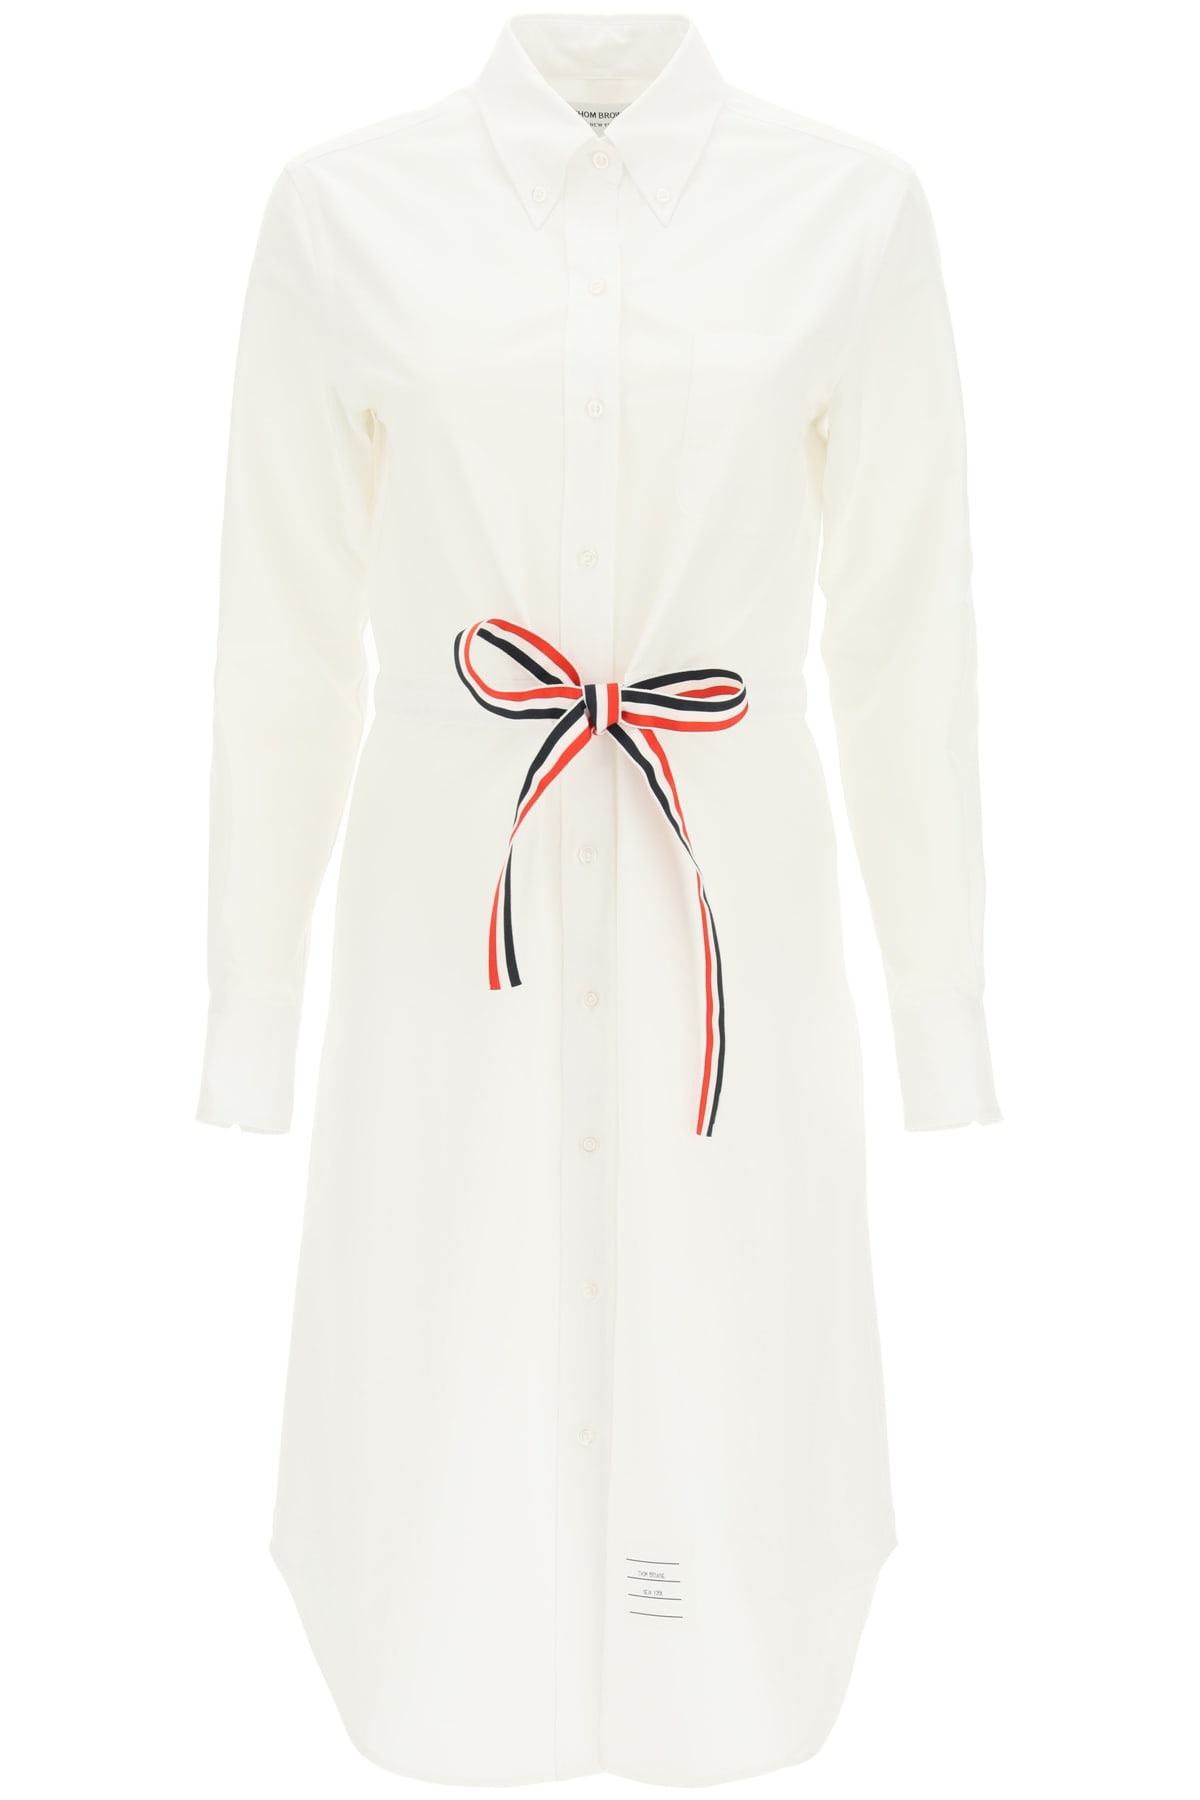 Buy Thom Browne Belted Shirt Dress online, shop Thom Browne with free shipping